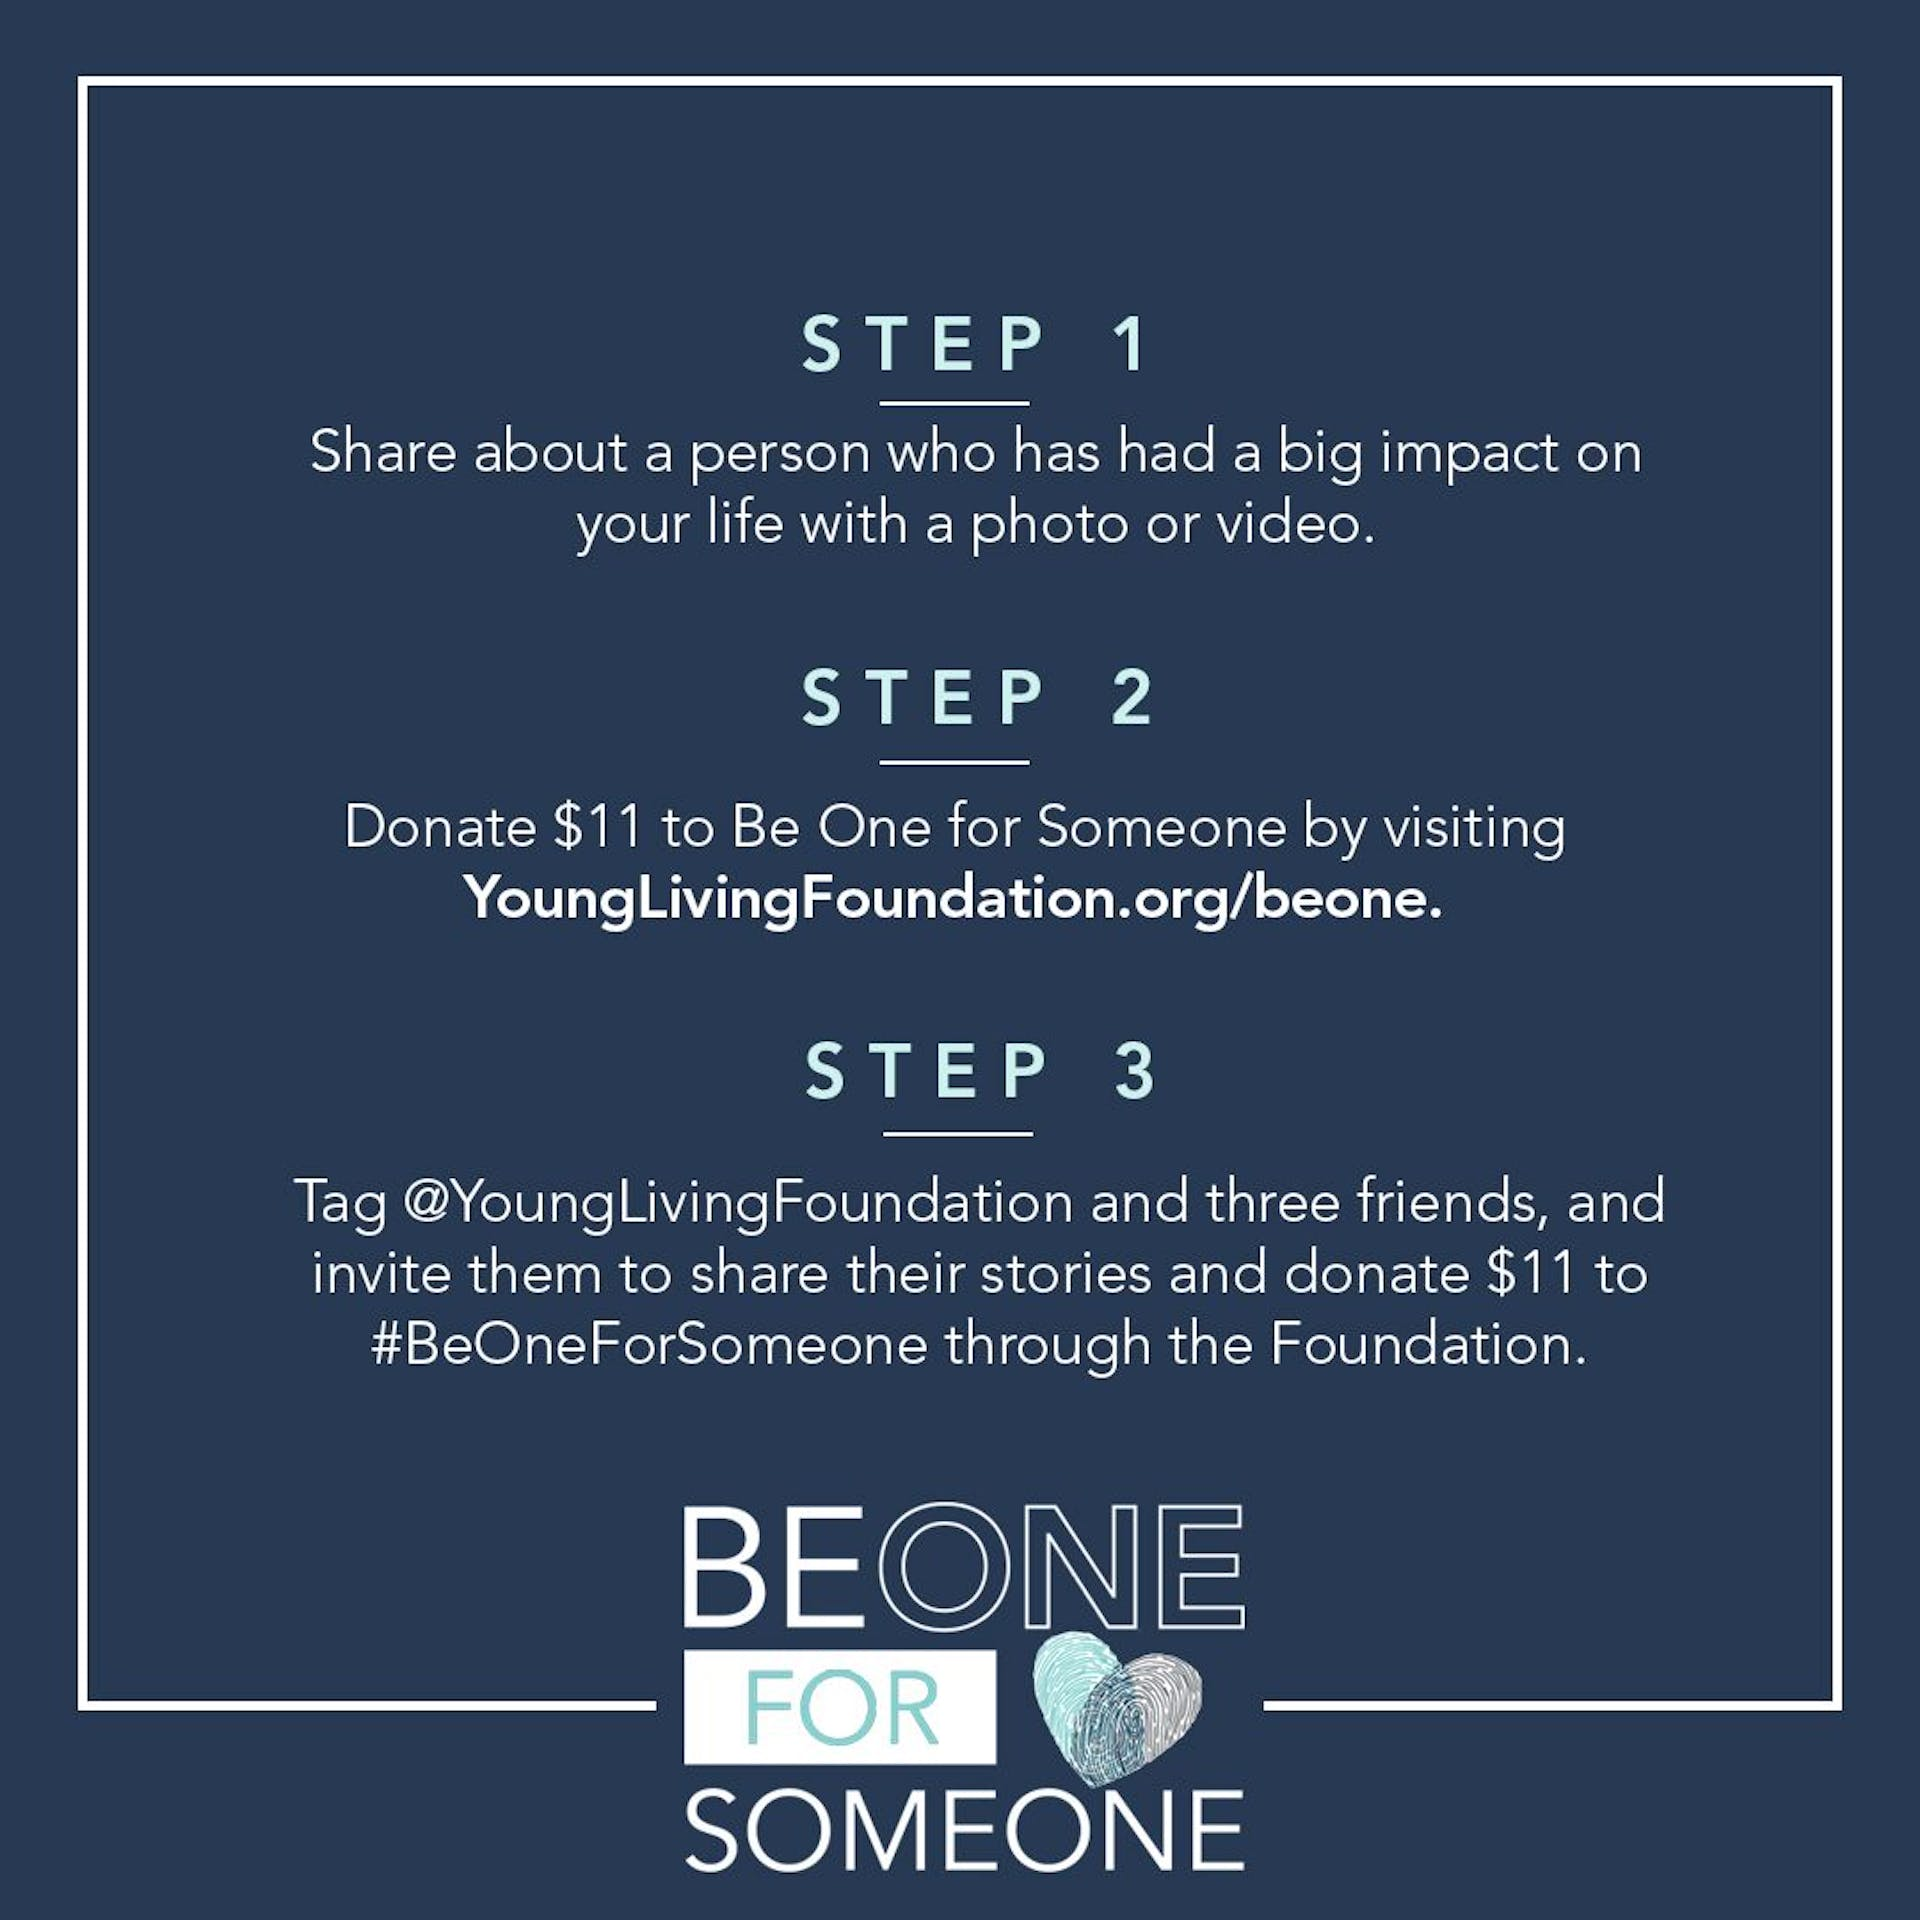 Be One for Someone social sharing tips